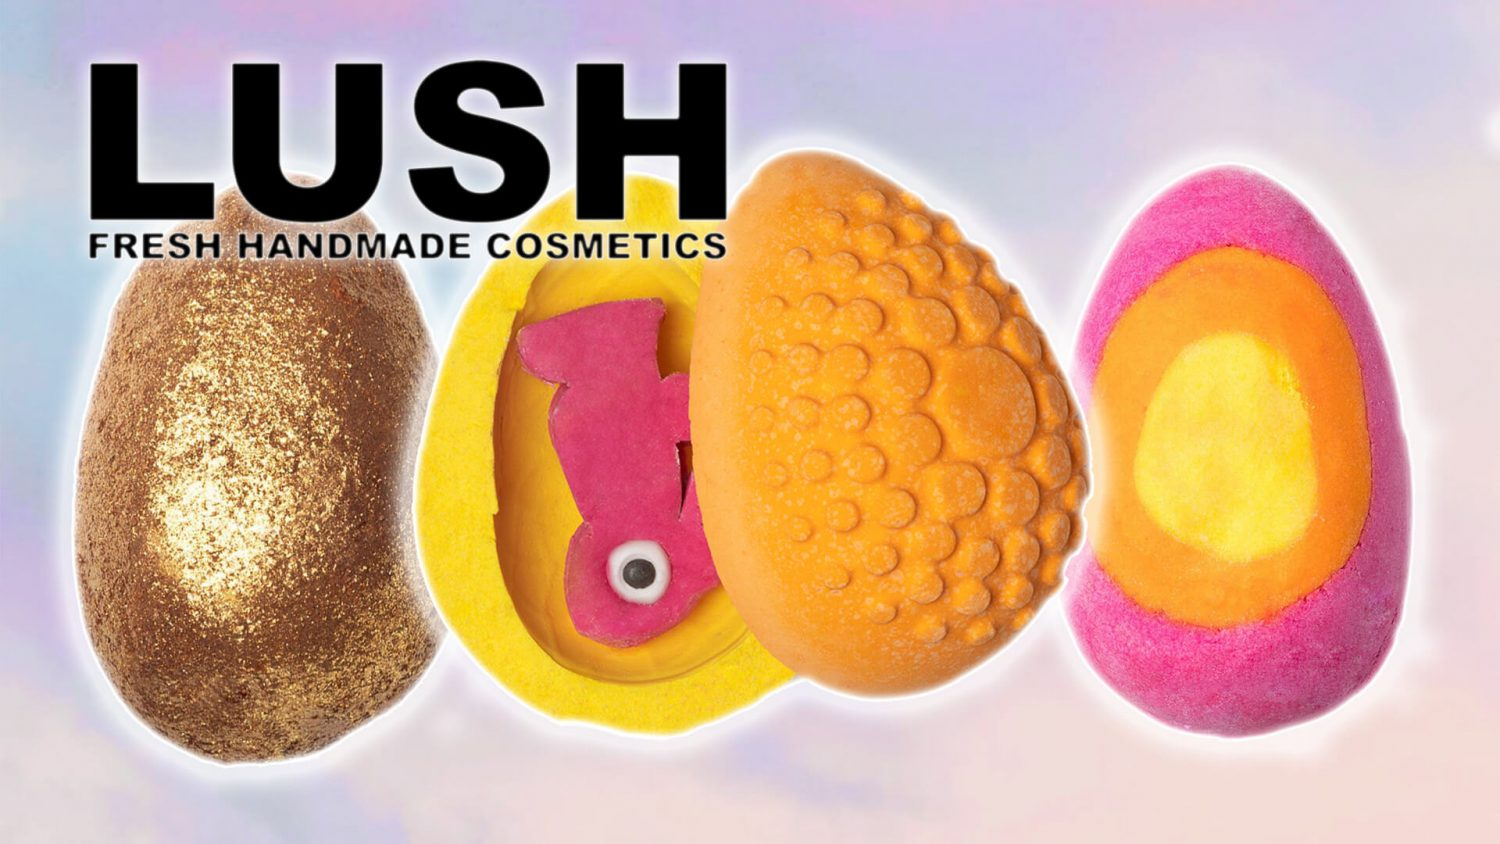 The Complete Guide to LUSH's Vegan Easter Products